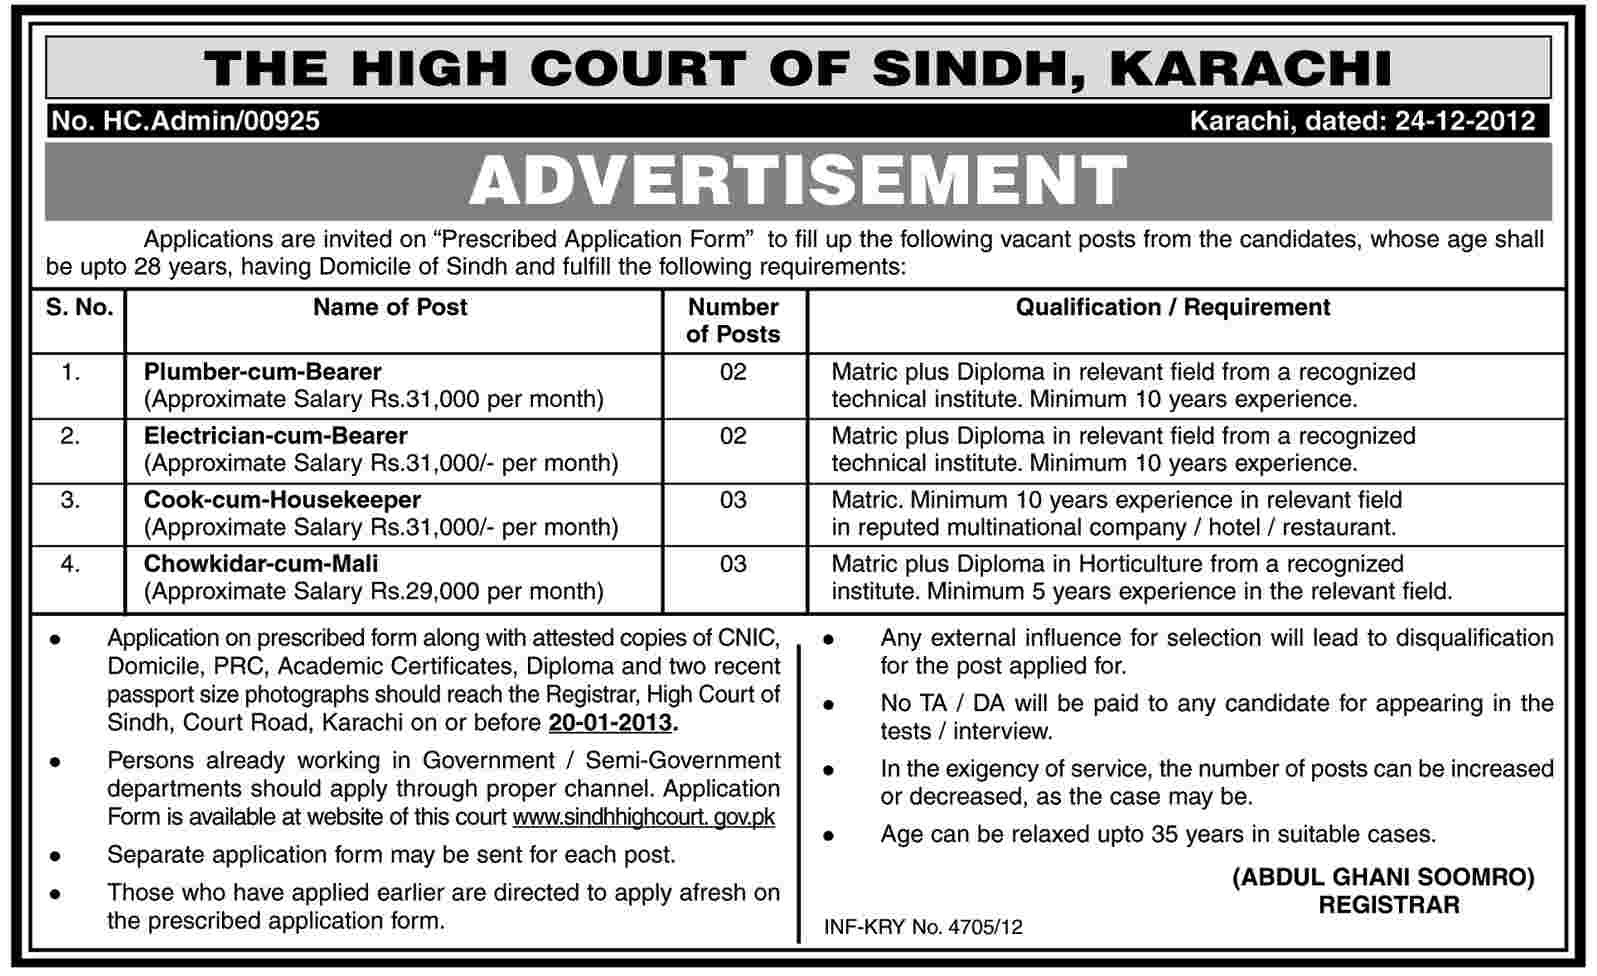 High Court of Sindh Karachi Jobs 2012 December (www.sindhhighcourt.gov.pk)